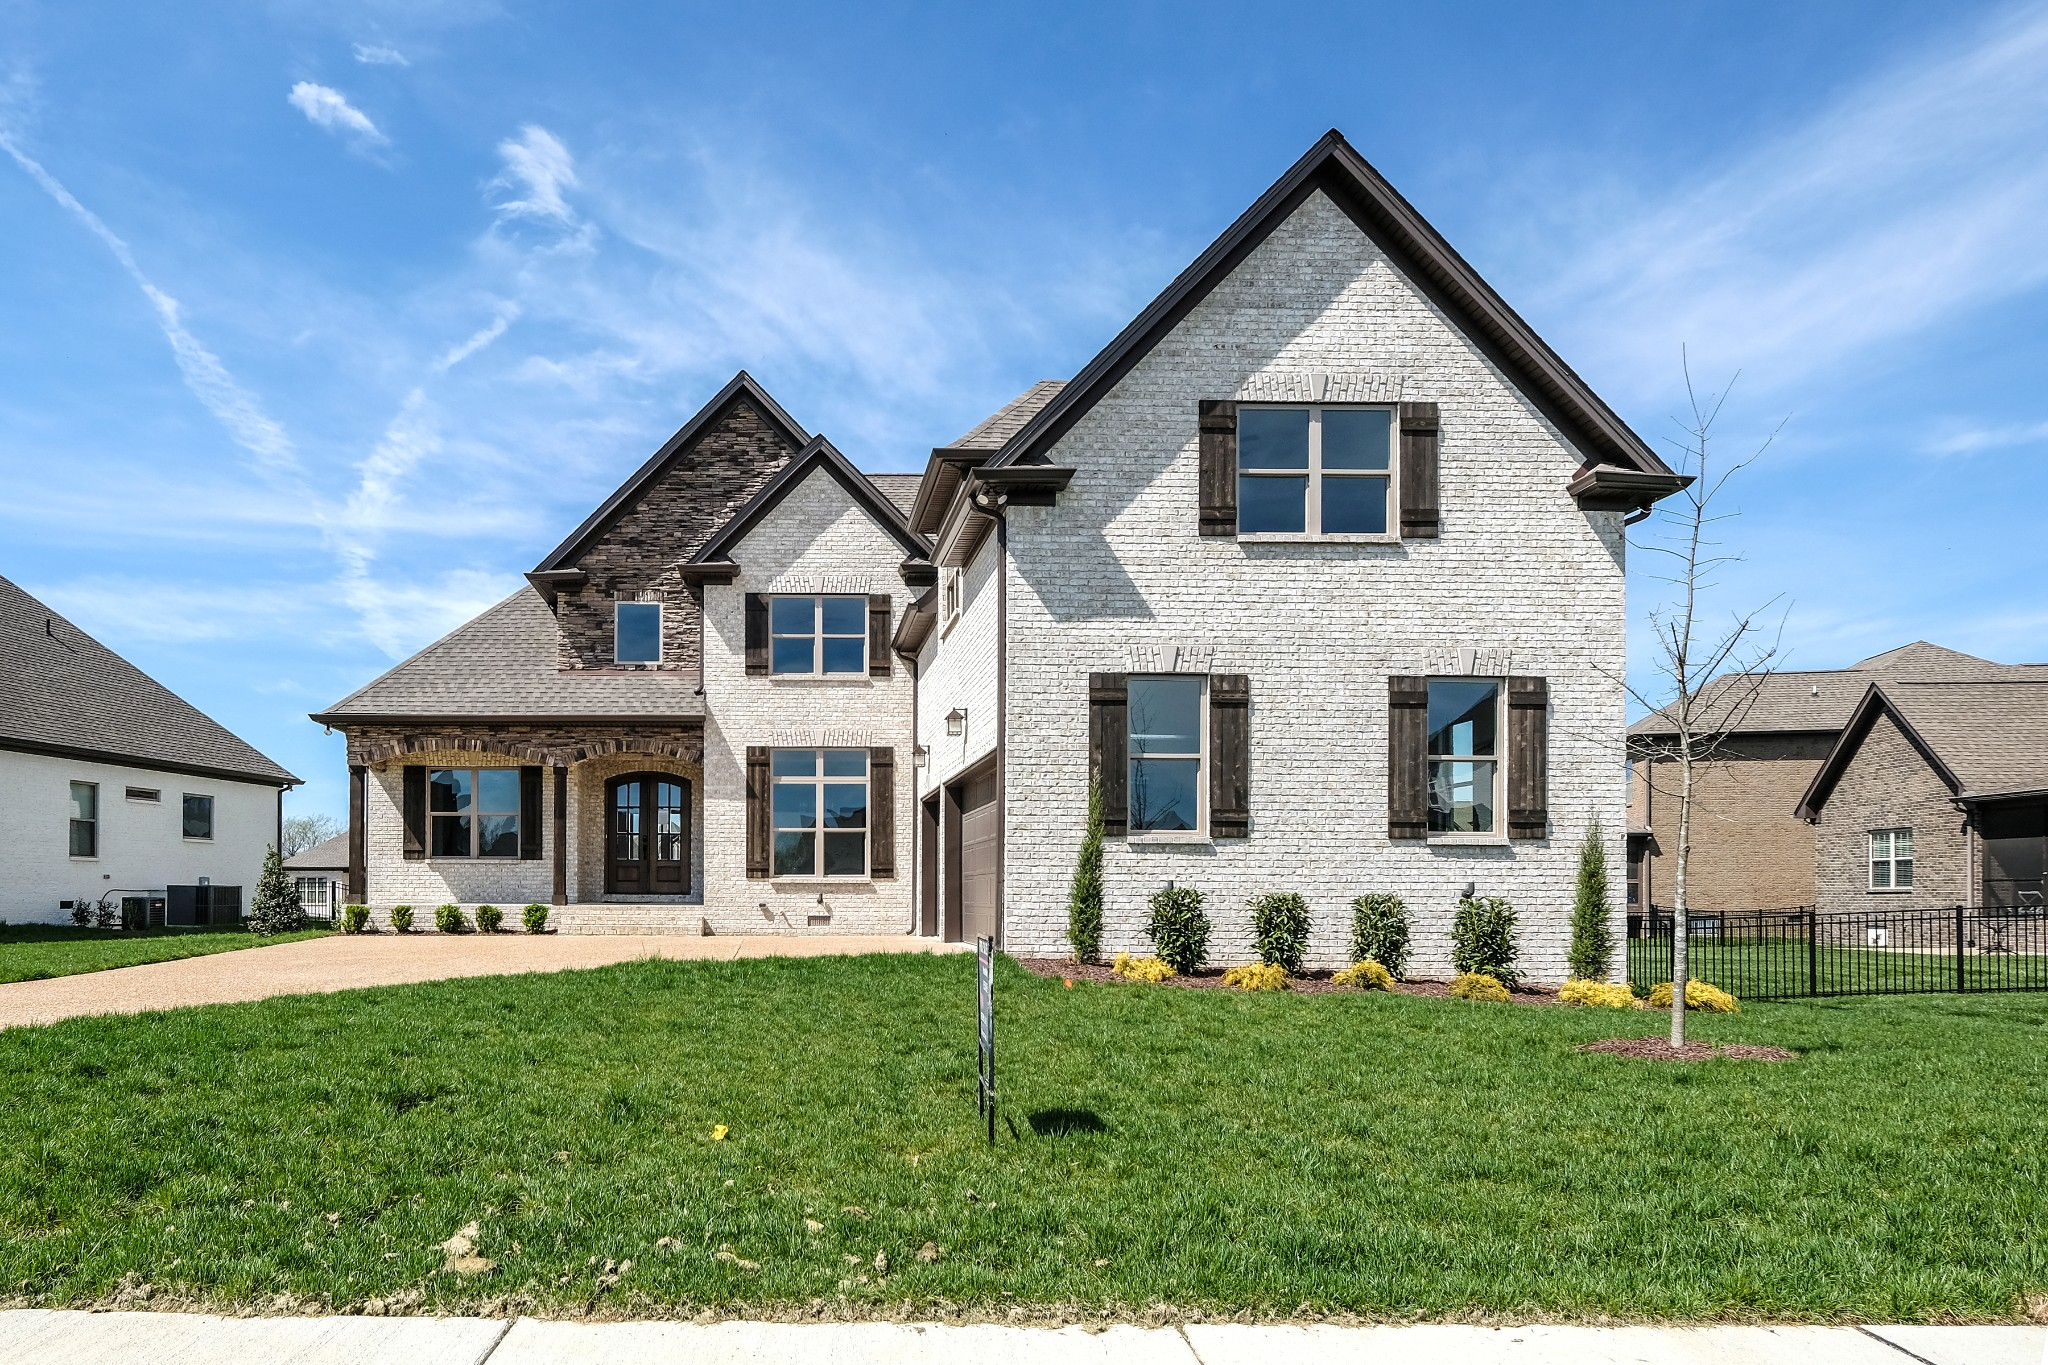 6022 Trout Lane (Lot 254), one of homes for sale in Spring Hill